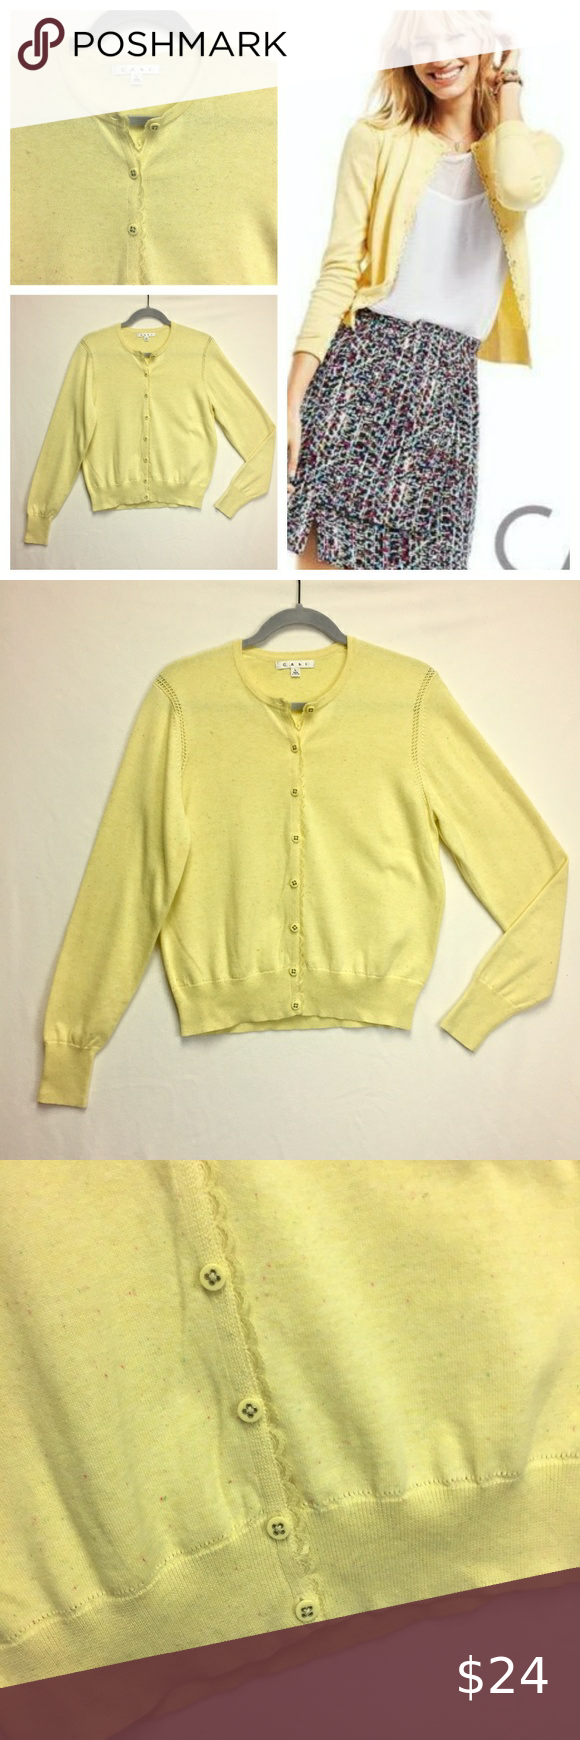 Cabi Butter Yellow Scallop Trim Cardigan Spring L Confetti Sprinkled Buttery Yellow Cardigan Is Perfect For Spring In 2020 Yellow Cardigan Cardigan Sweaters For Women